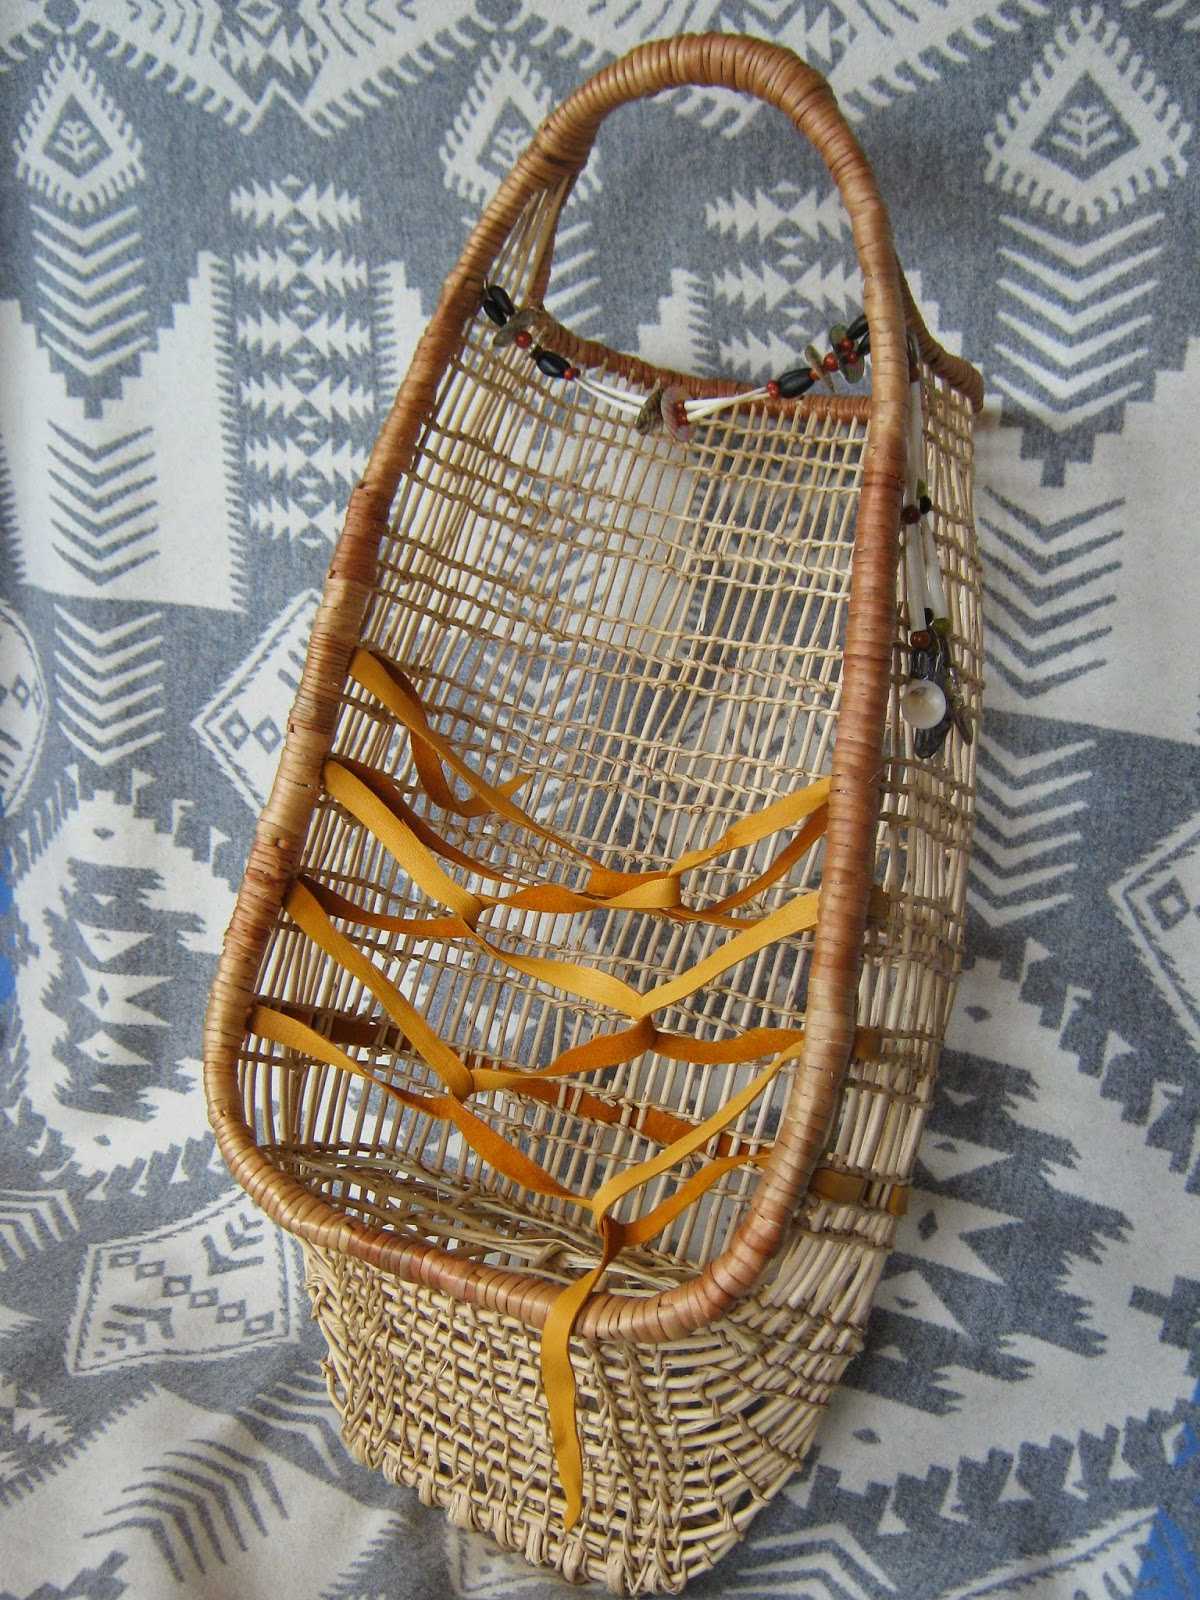 Gathering Basket Making Materials : Karuk basket materials